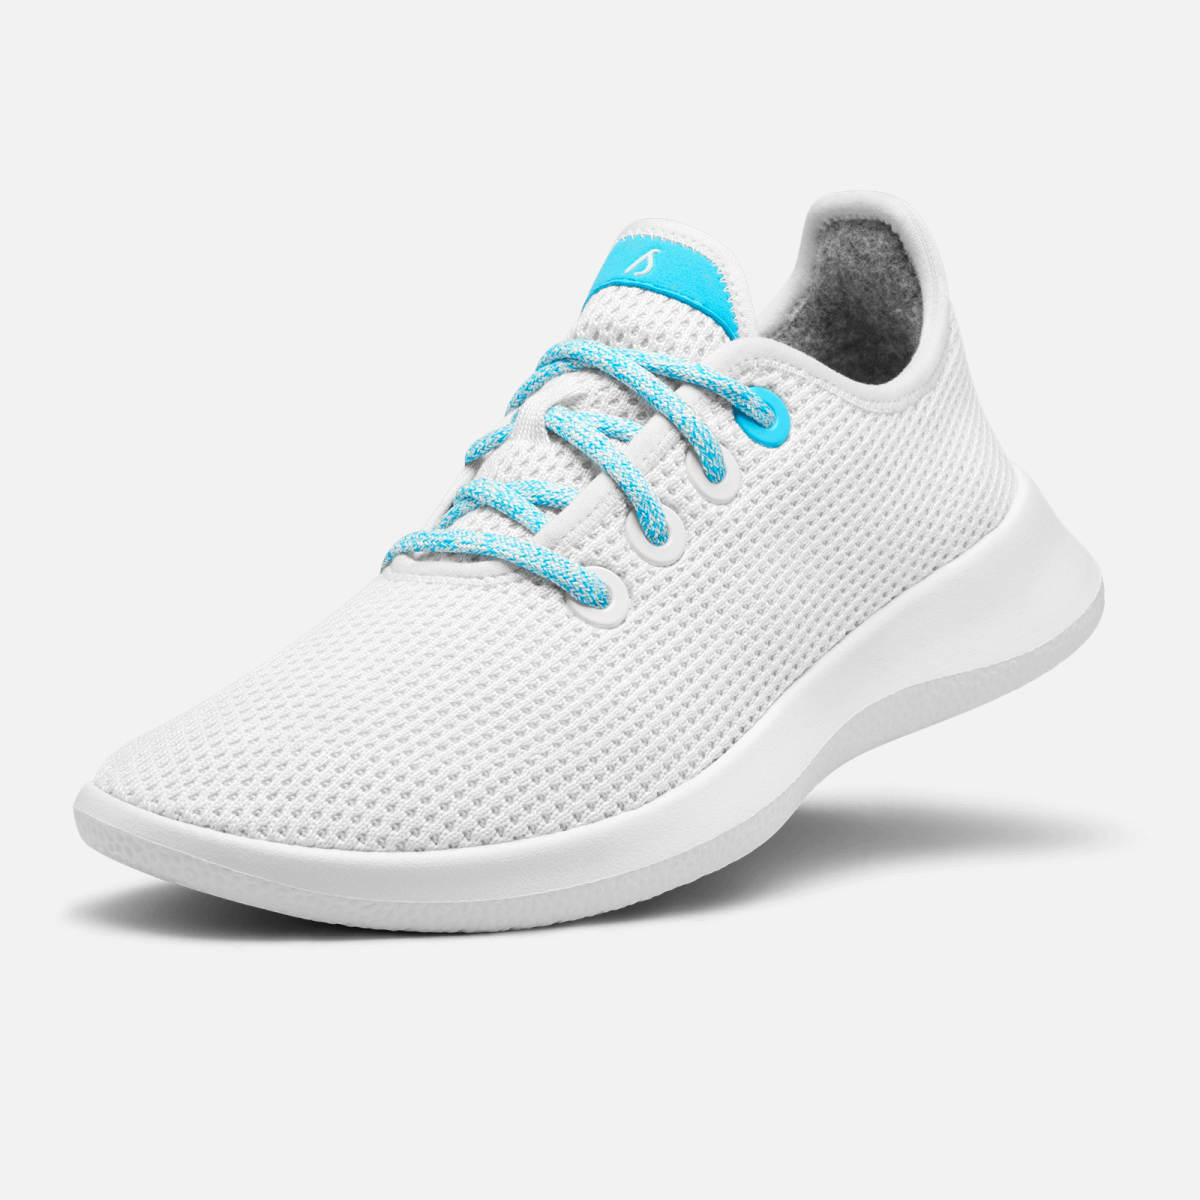 Allbirds sneakers - £95 - Special edition sneakers, reinterpreting Allbirds' Tree Topper and Tree Runner trainers with the JUST Water blue into various elements of the shoes, including the laces, tabs, eyelets, and SweetFoam™ soles